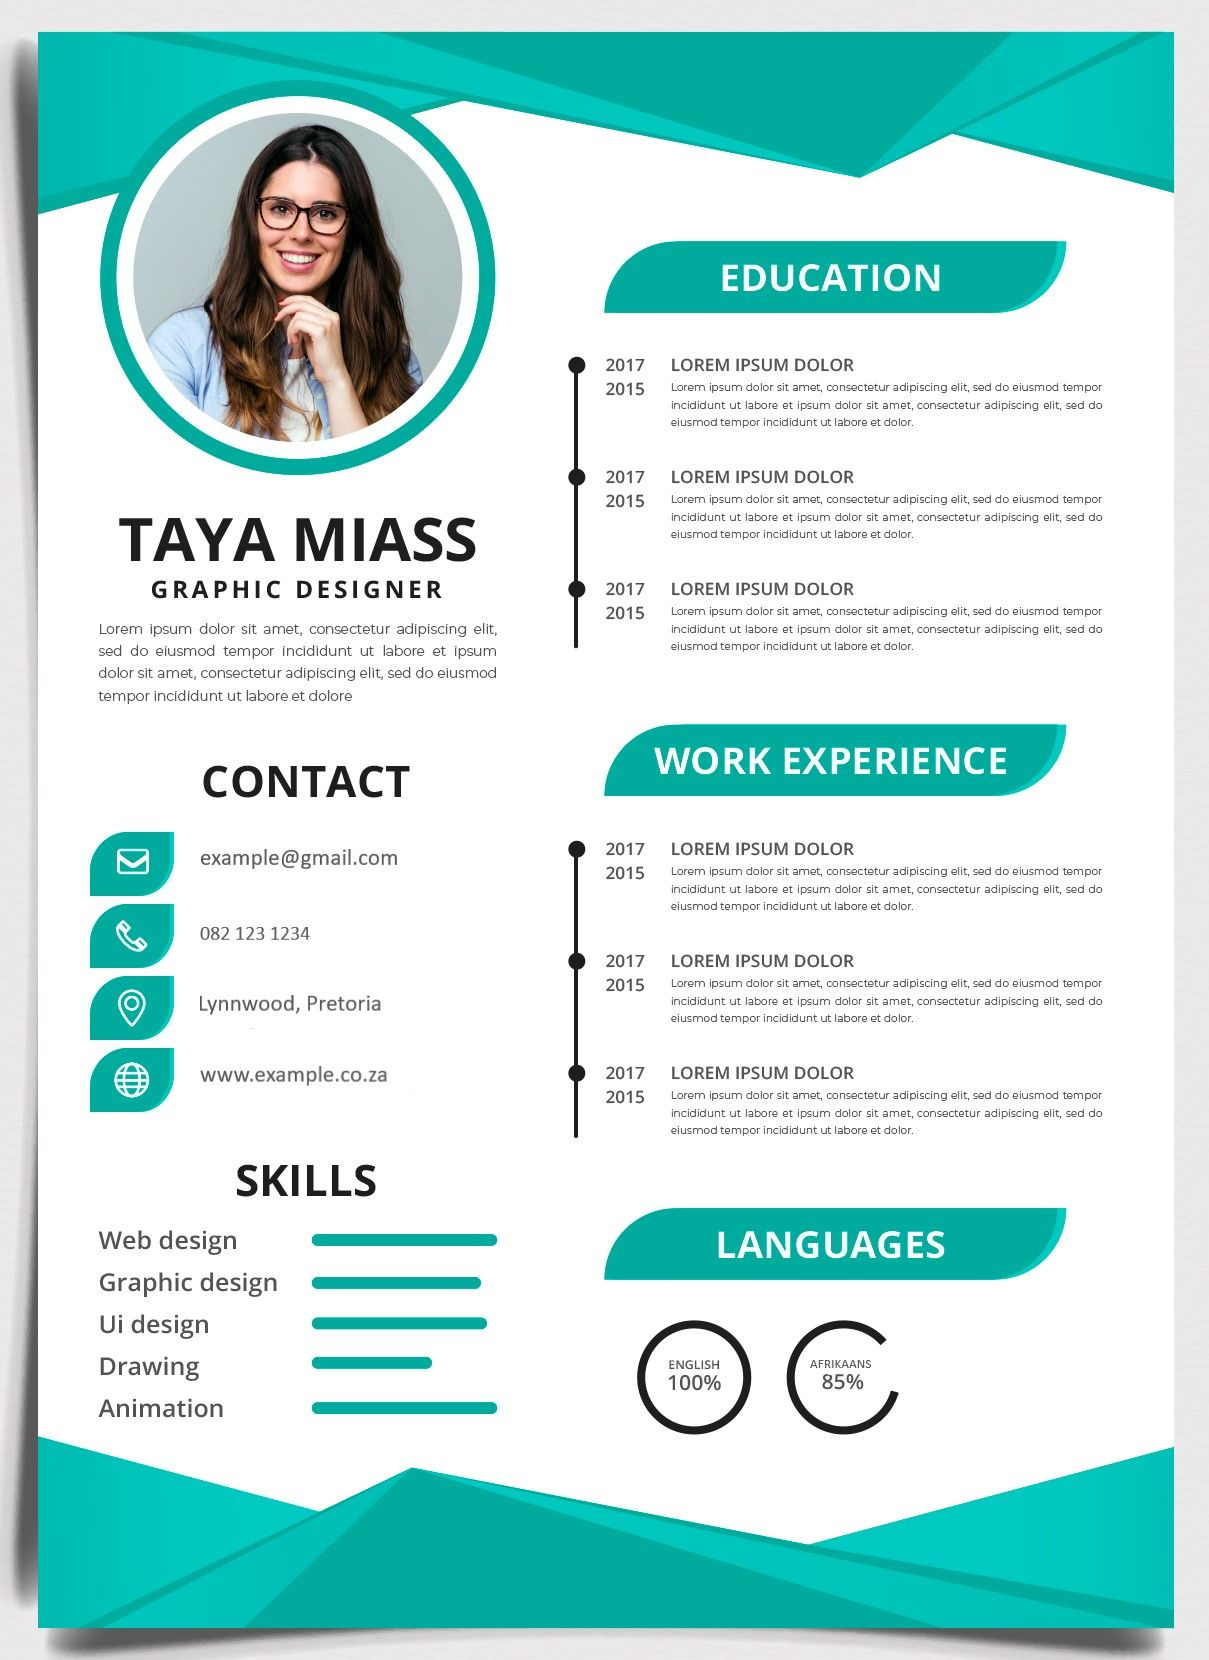 Our howto guide on creating your own CV Job Mail Blog